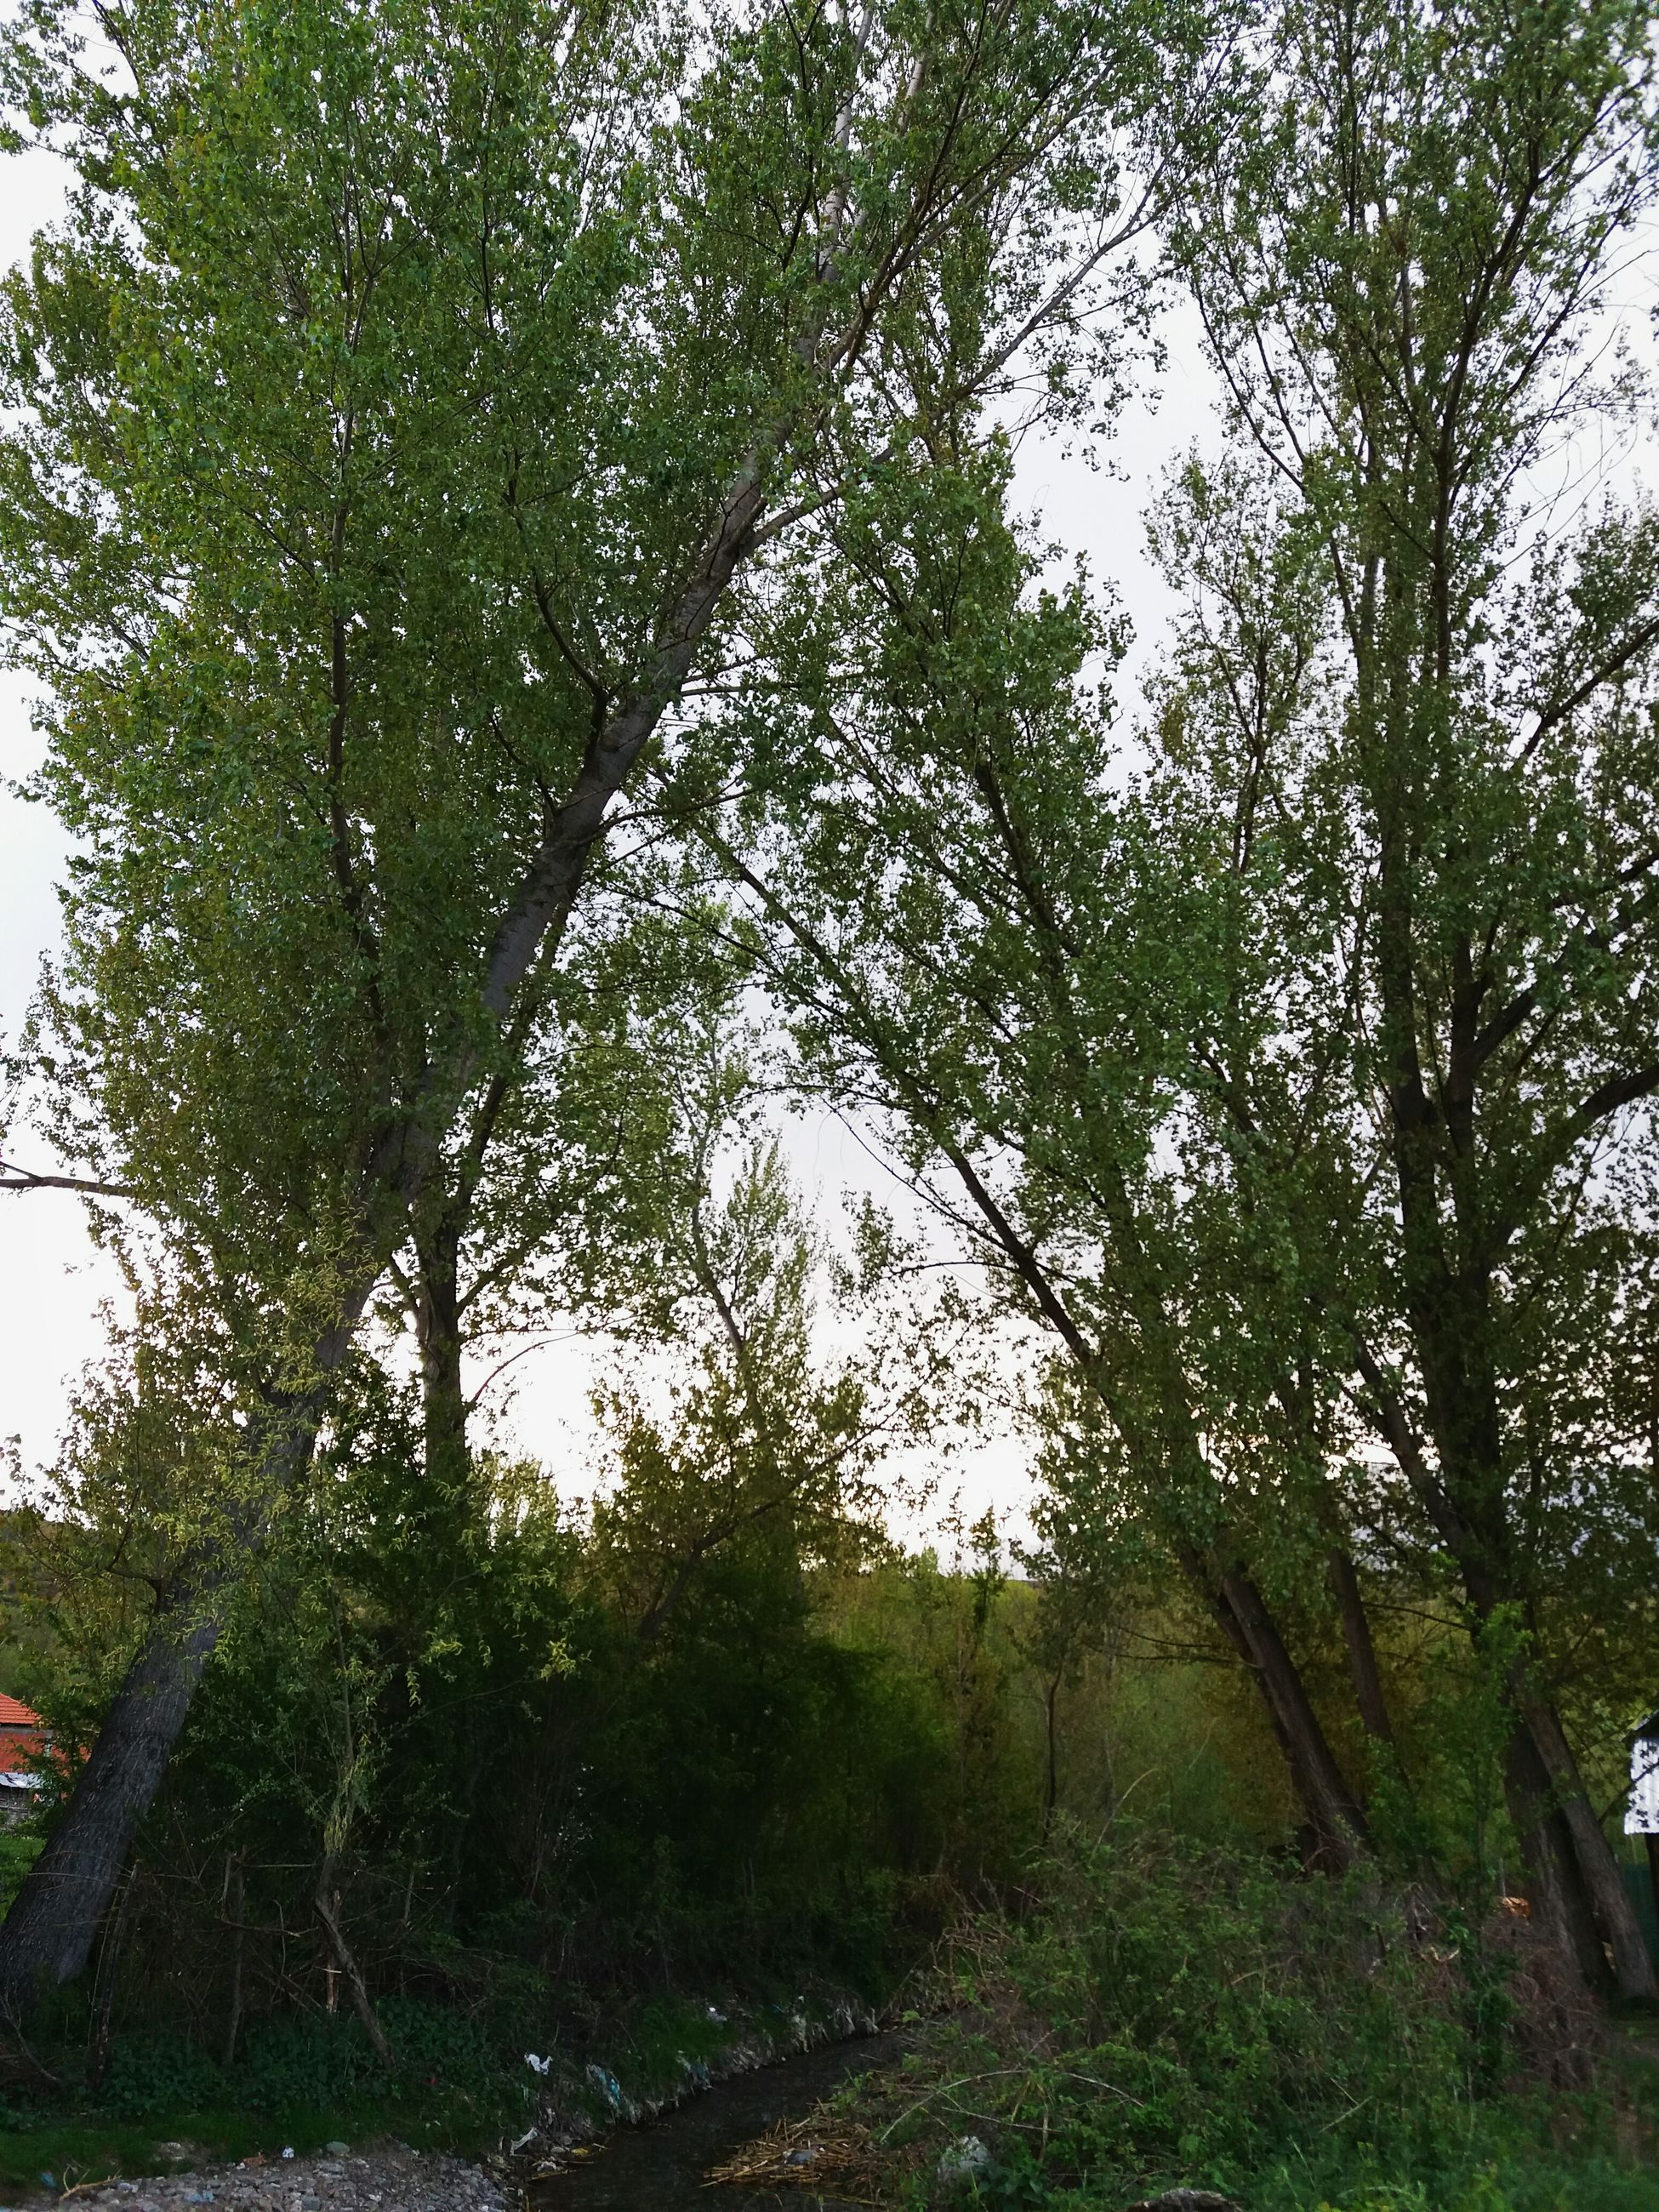 tree, nature, forest, outdoors, growth, tranquility, day, no people, landscape, beauty in nature, scenics, branch, grass, sky